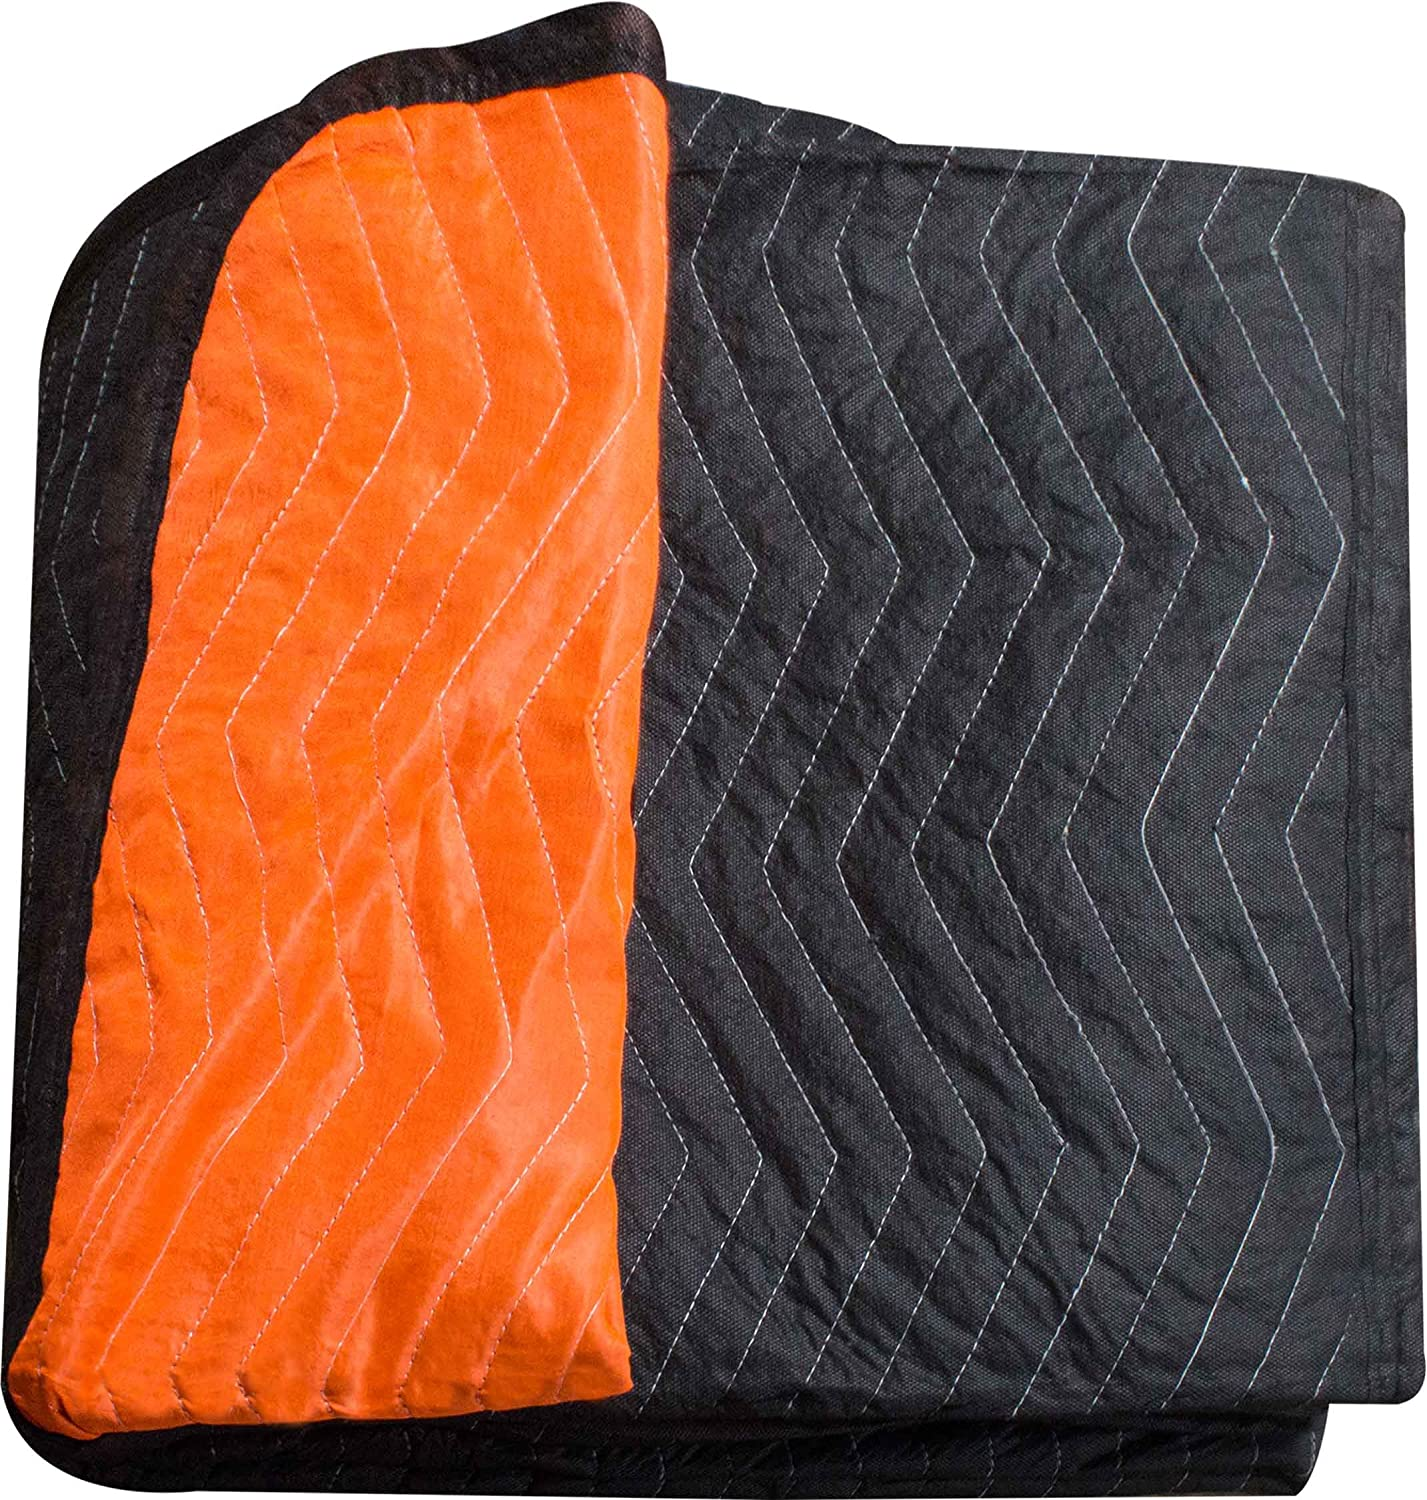 "Burly moving blanket from Forearm Forklift-1 moving blanket ""Blaze"" orange/black 